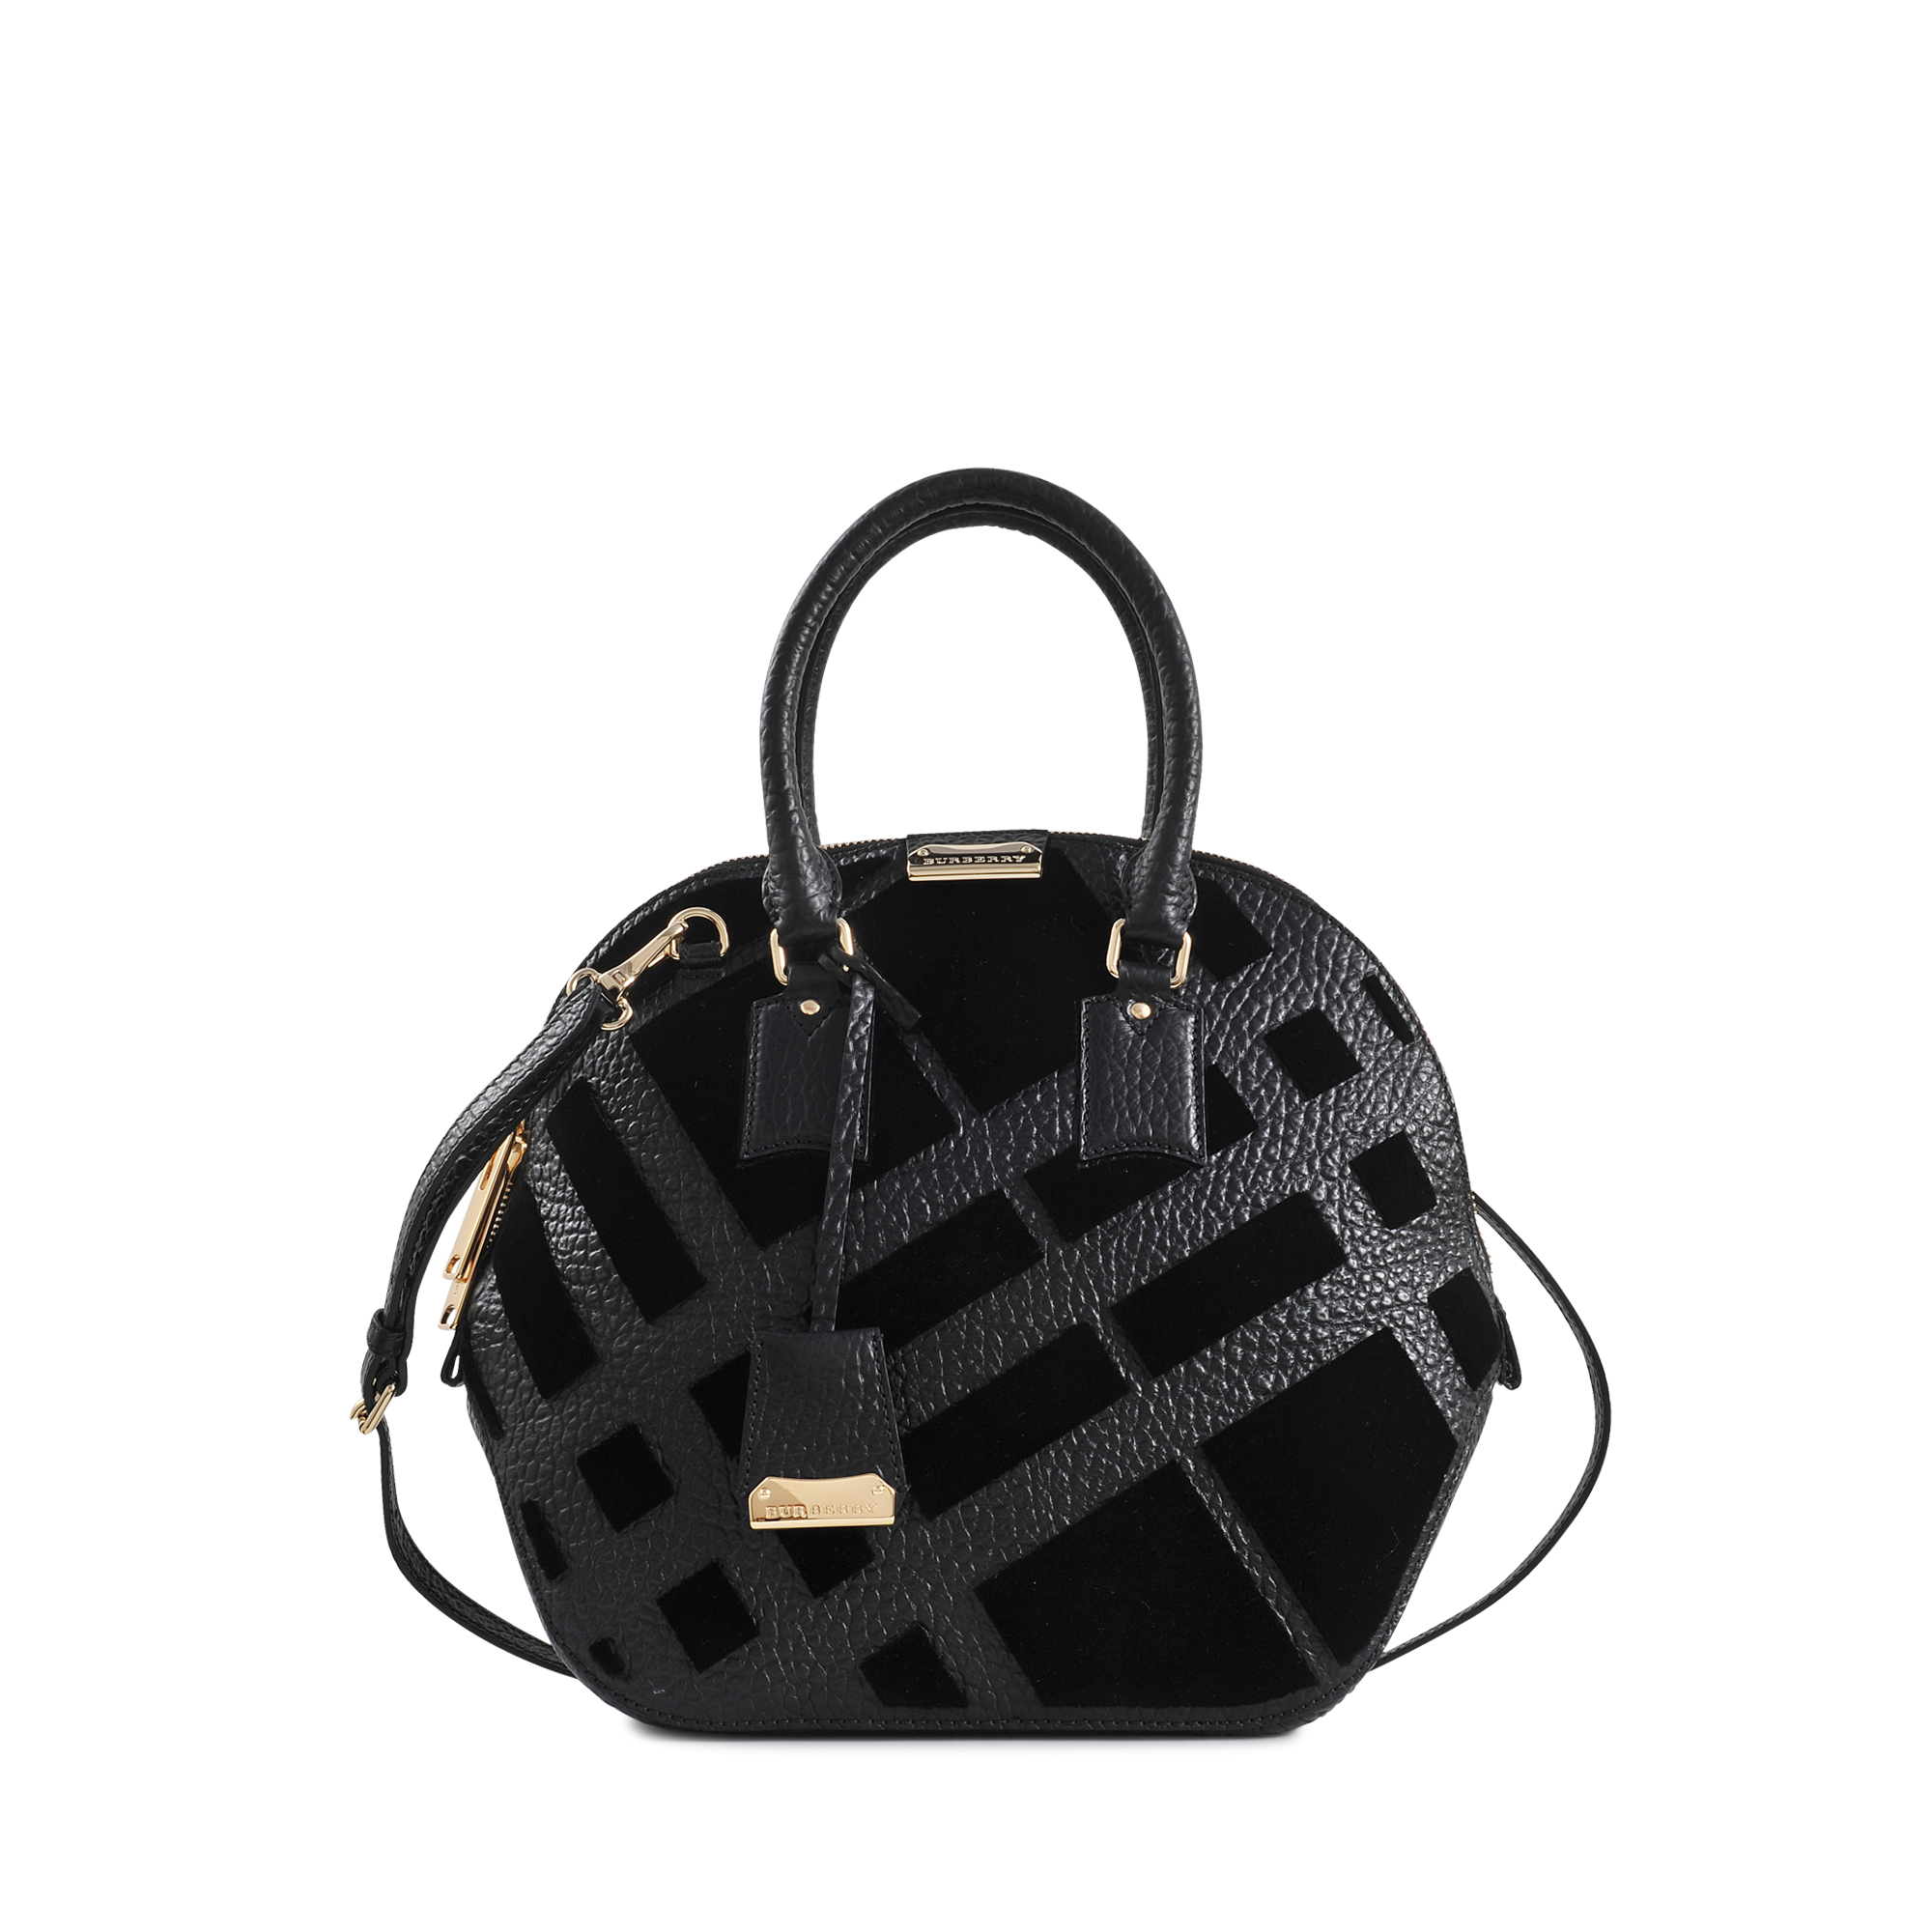 69b2cd98a000 Burberry Md Orchard Signature Grain Bag in Black - Lyst